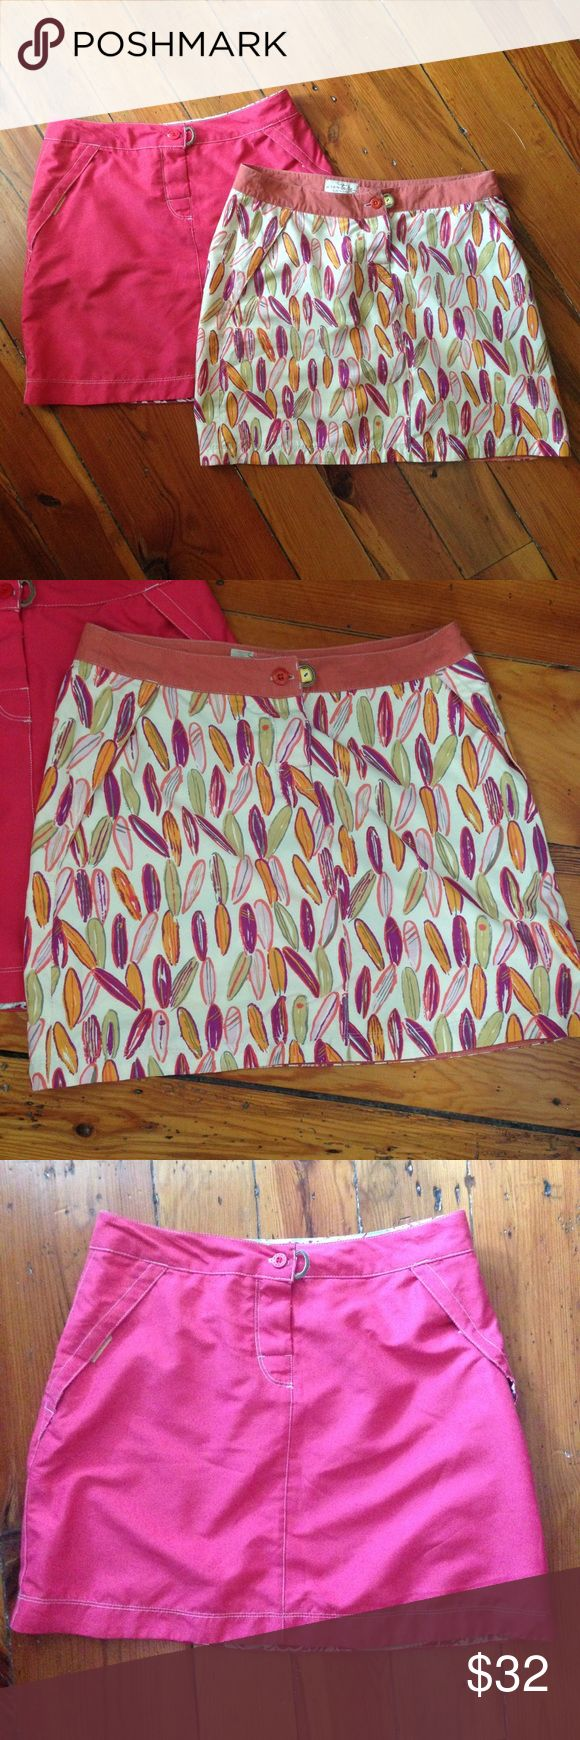 "Two Aventura Quick-Dry Mini Skirts Two mini skirts from Aventura Clothing by Sportif, EUC. 100% polyester, quick-dry material, so they are great for hiking or even as a cover-up. Mesh pockets with Velcro closure. Velcro and button closure at waist. The printed skirt is size 4 with approximate measurements of 15"" waist and 16"" length. The size tag in the coral skirt has been removed by previous owner, but has 14"" waist and 16"" length. Aventura Clothing by Sportif Skirts Mini"